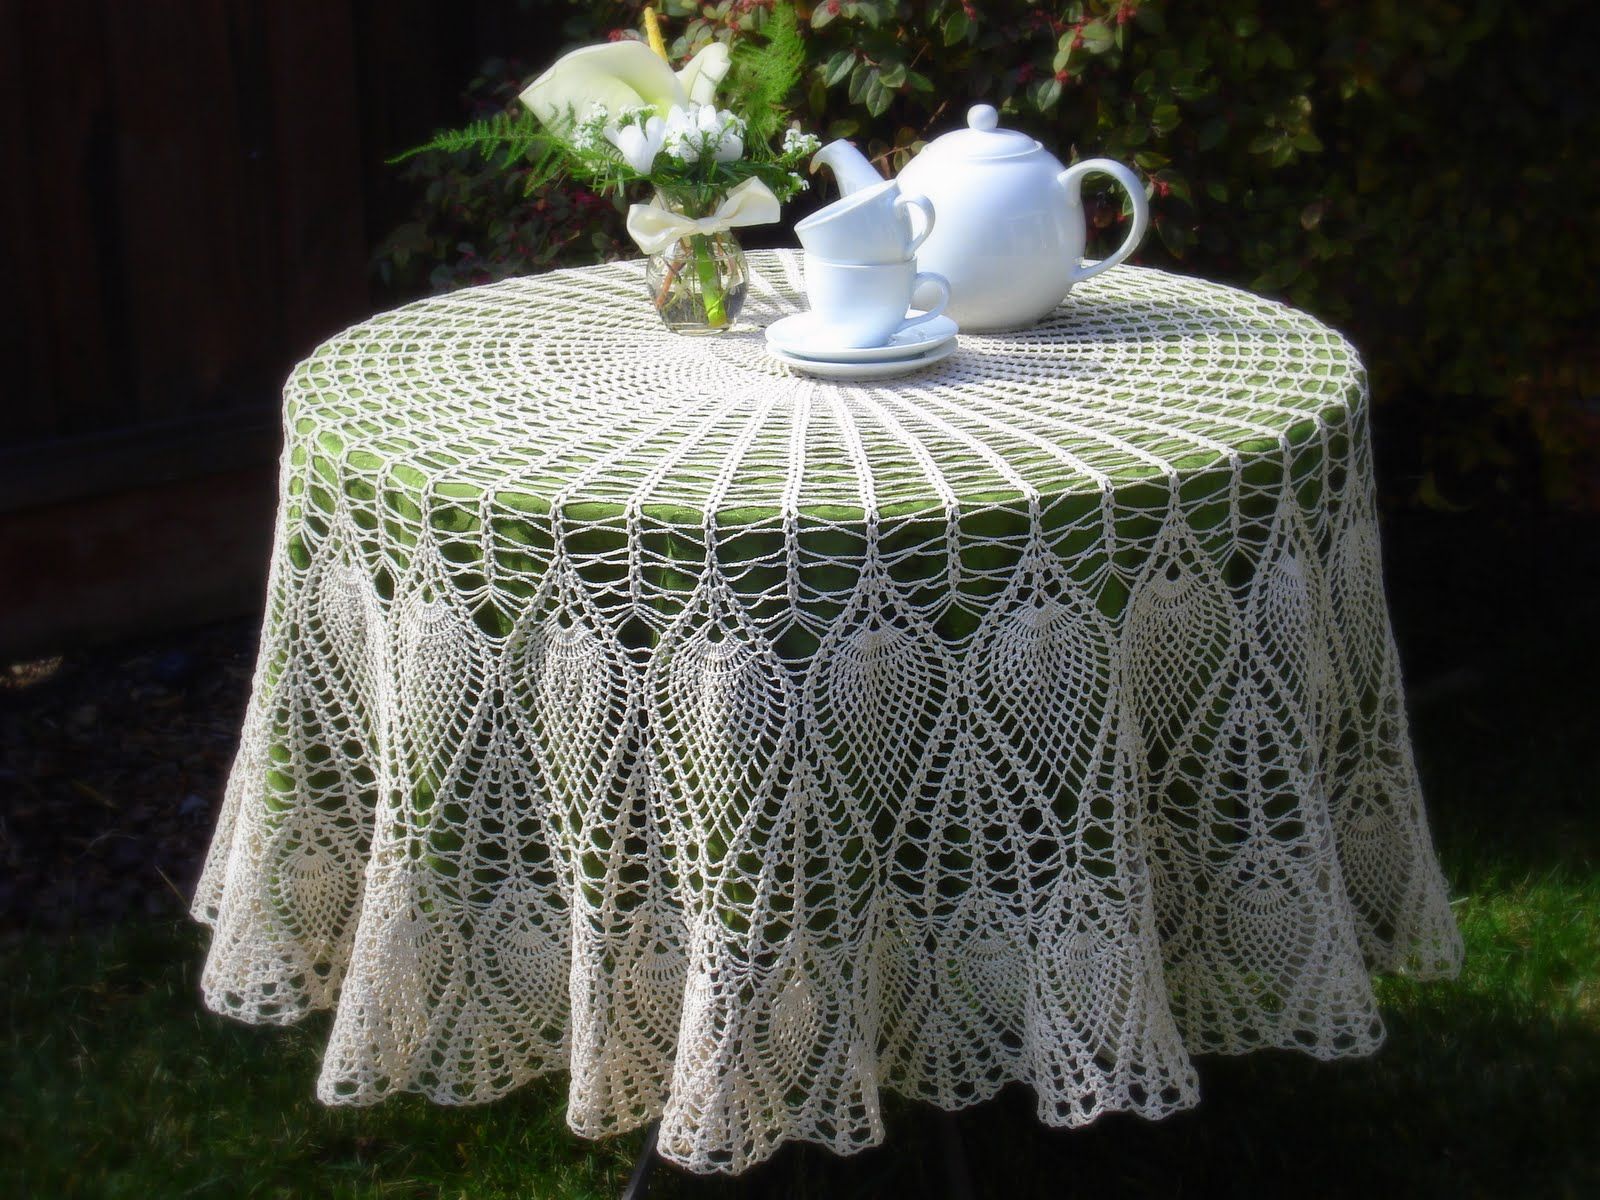 CROCHET PATTERN S FOR TABLECLOTHS Patterns